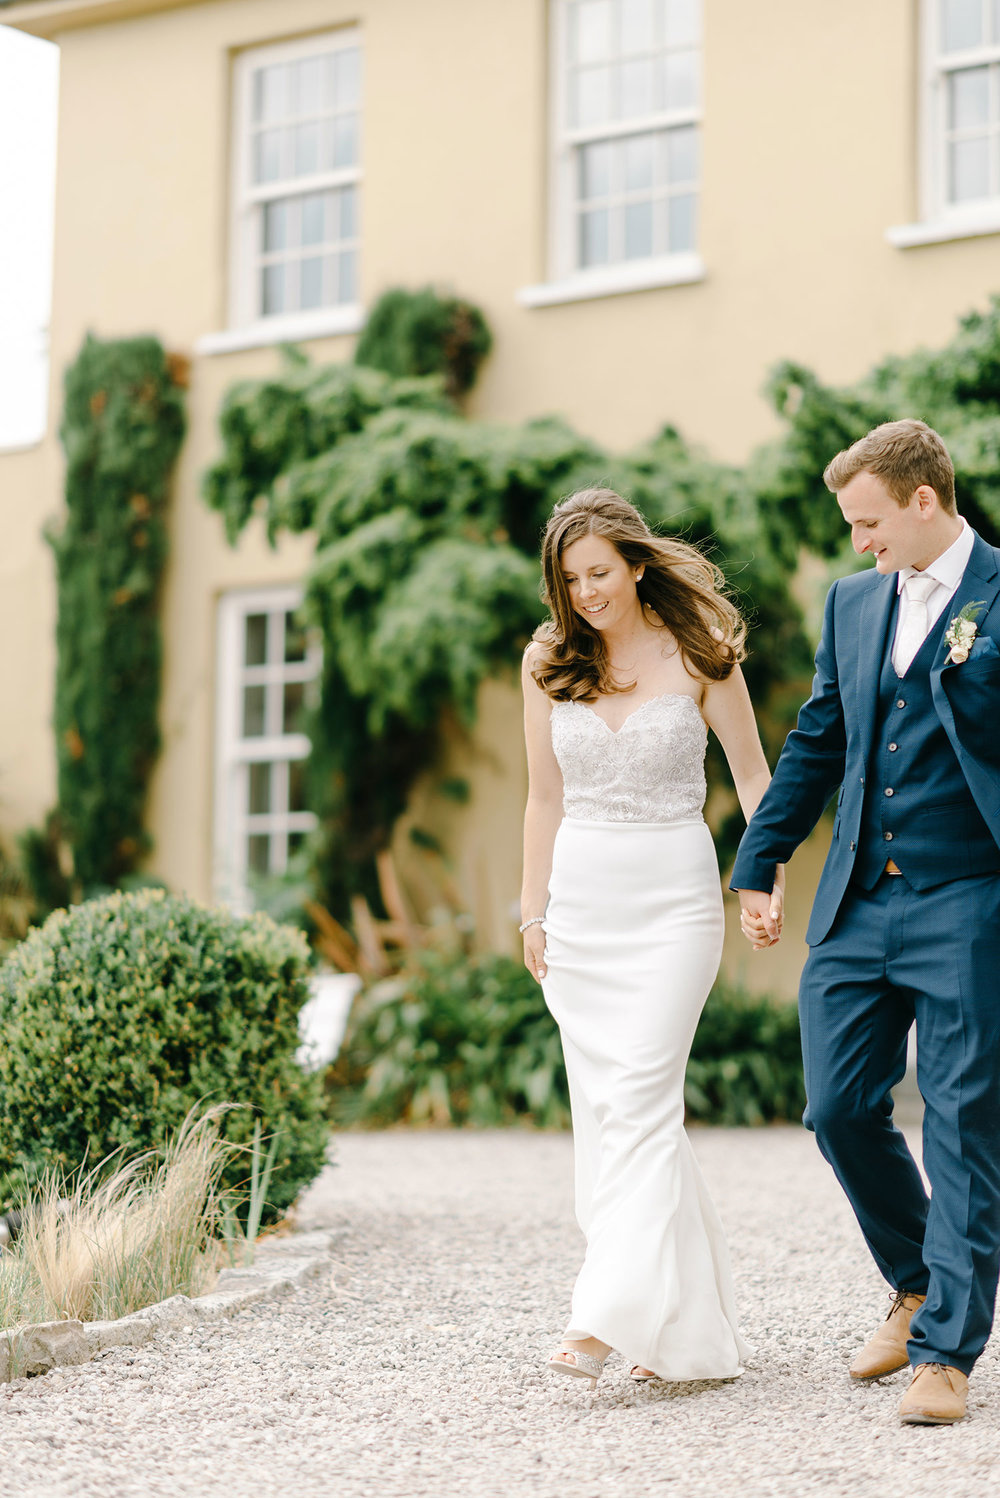 destination-wedding-photographer-ballinacurra-house-wedding-20180711_0087.jpg